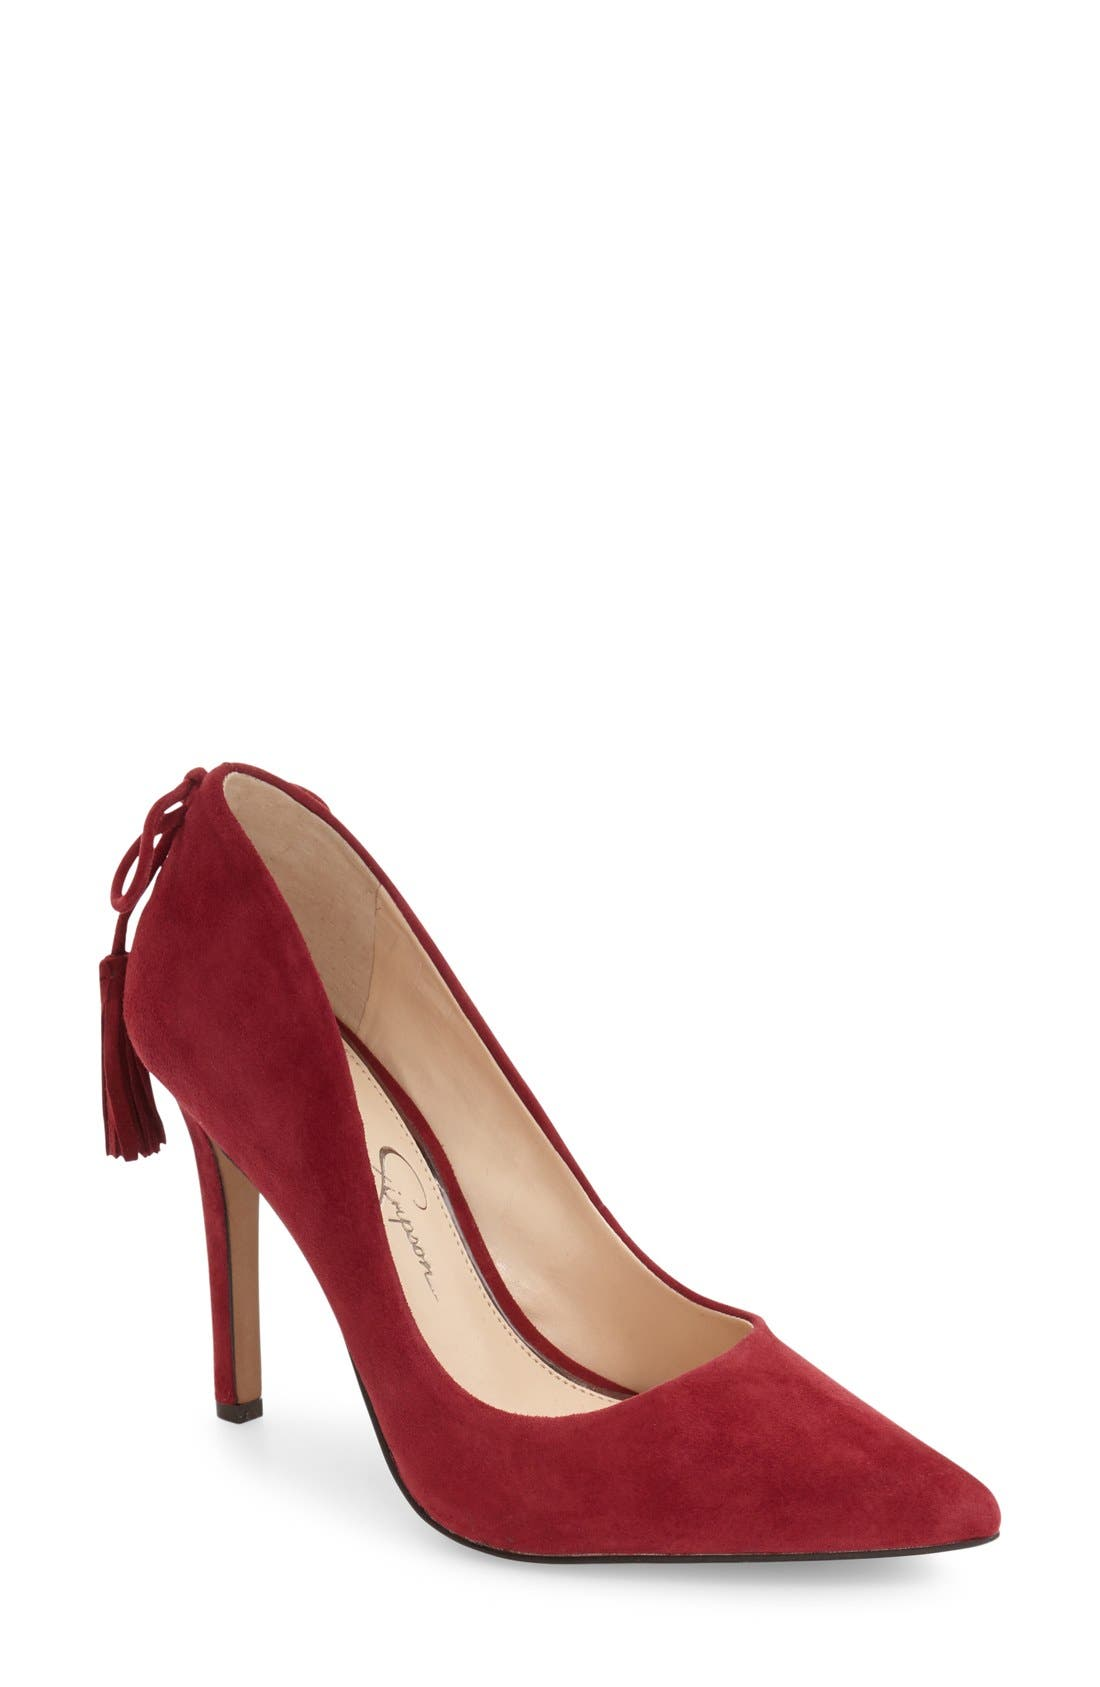 Alternate Image 1 Selected - Jessica Simpson Centella Pointy Toe Pump (Women)